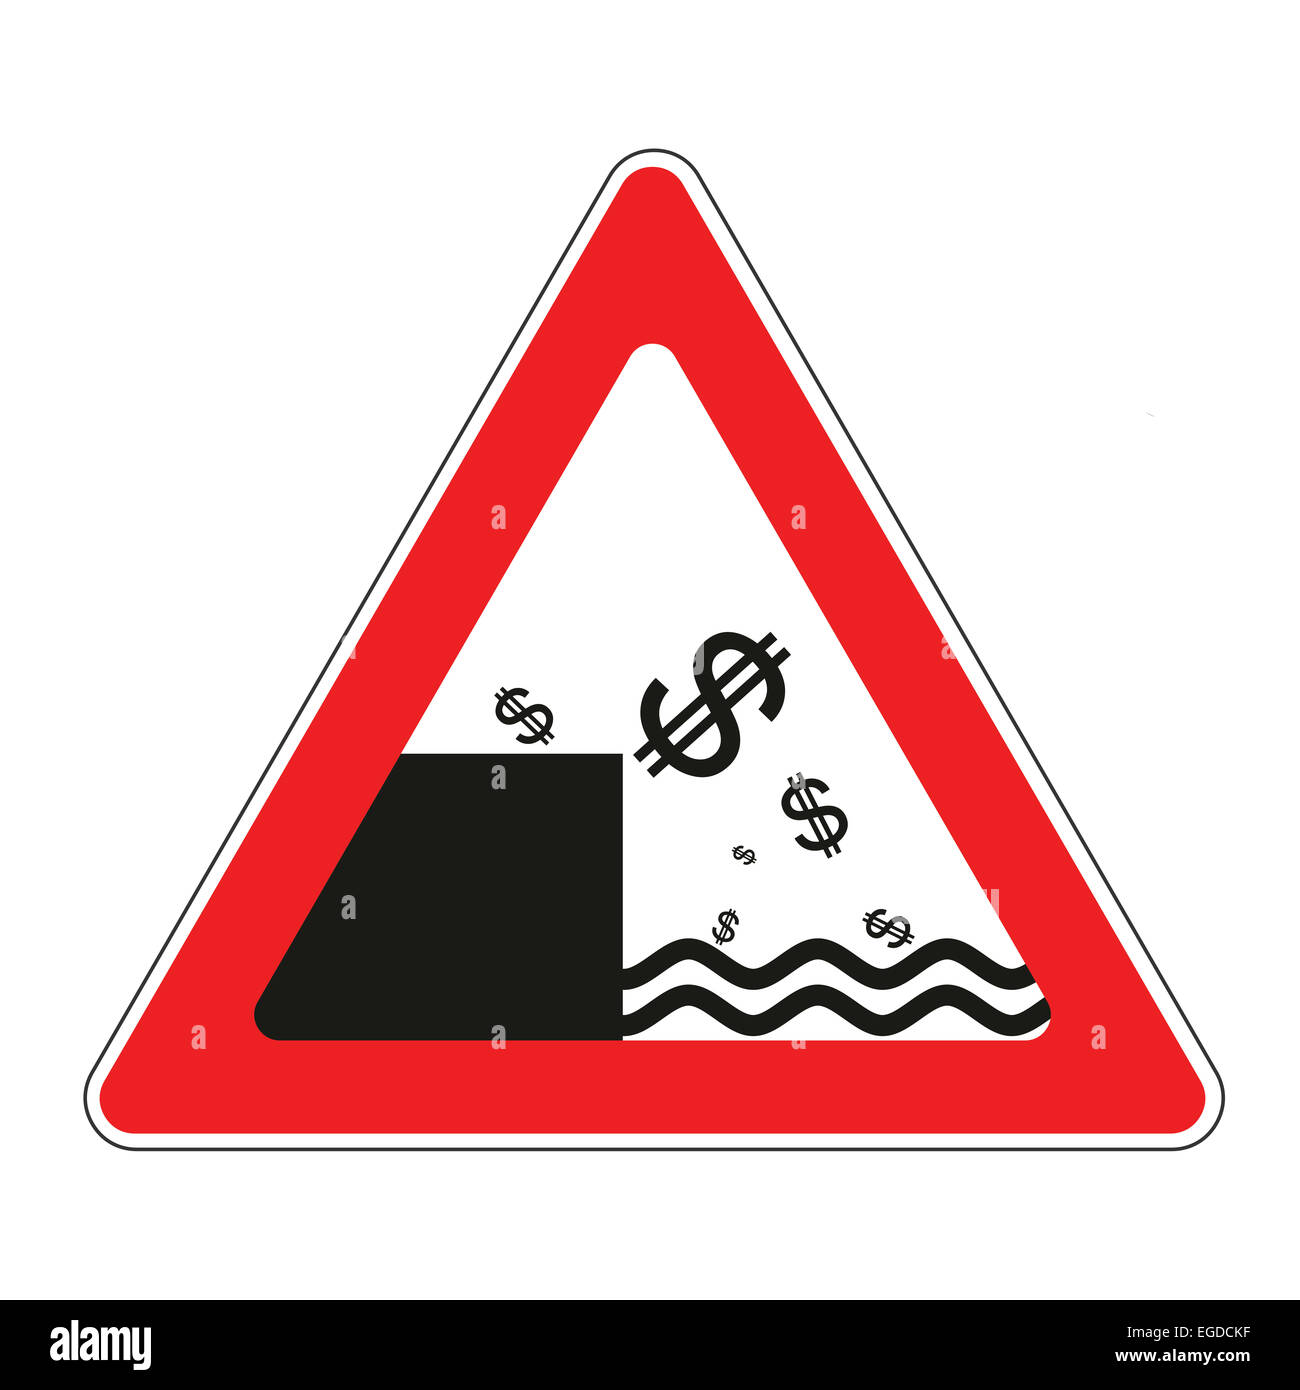 Illustration of road sign with dollar currency decline concept - Stock Image